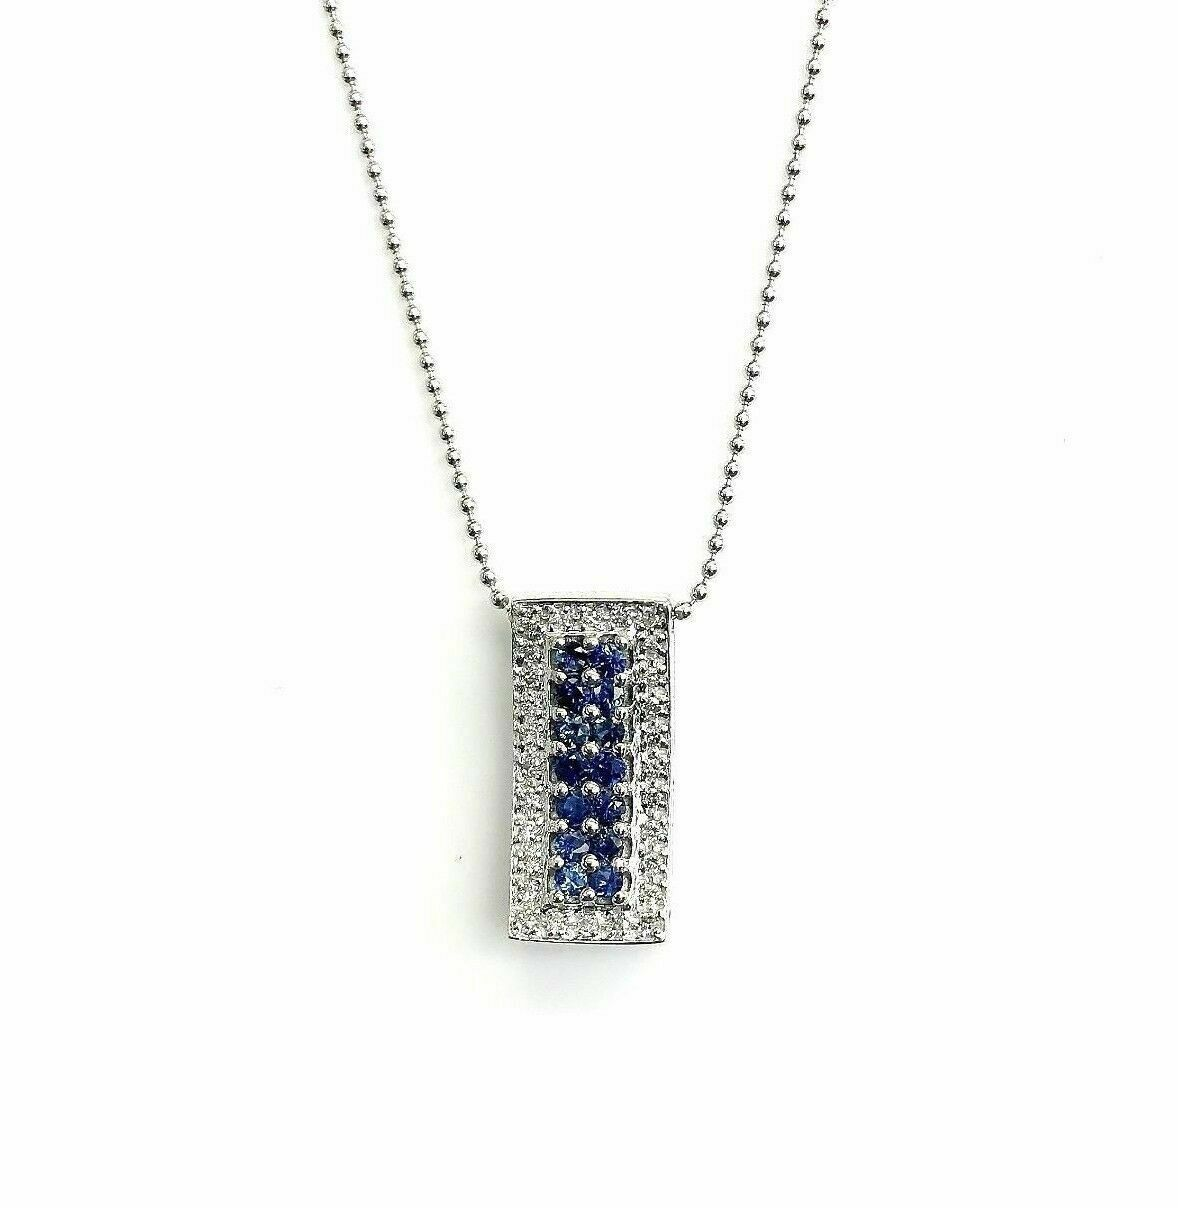 0.85 Carats t.w. Blue Sapphire and Diamond Pendant 14K Gold Pendant w 14K Chain